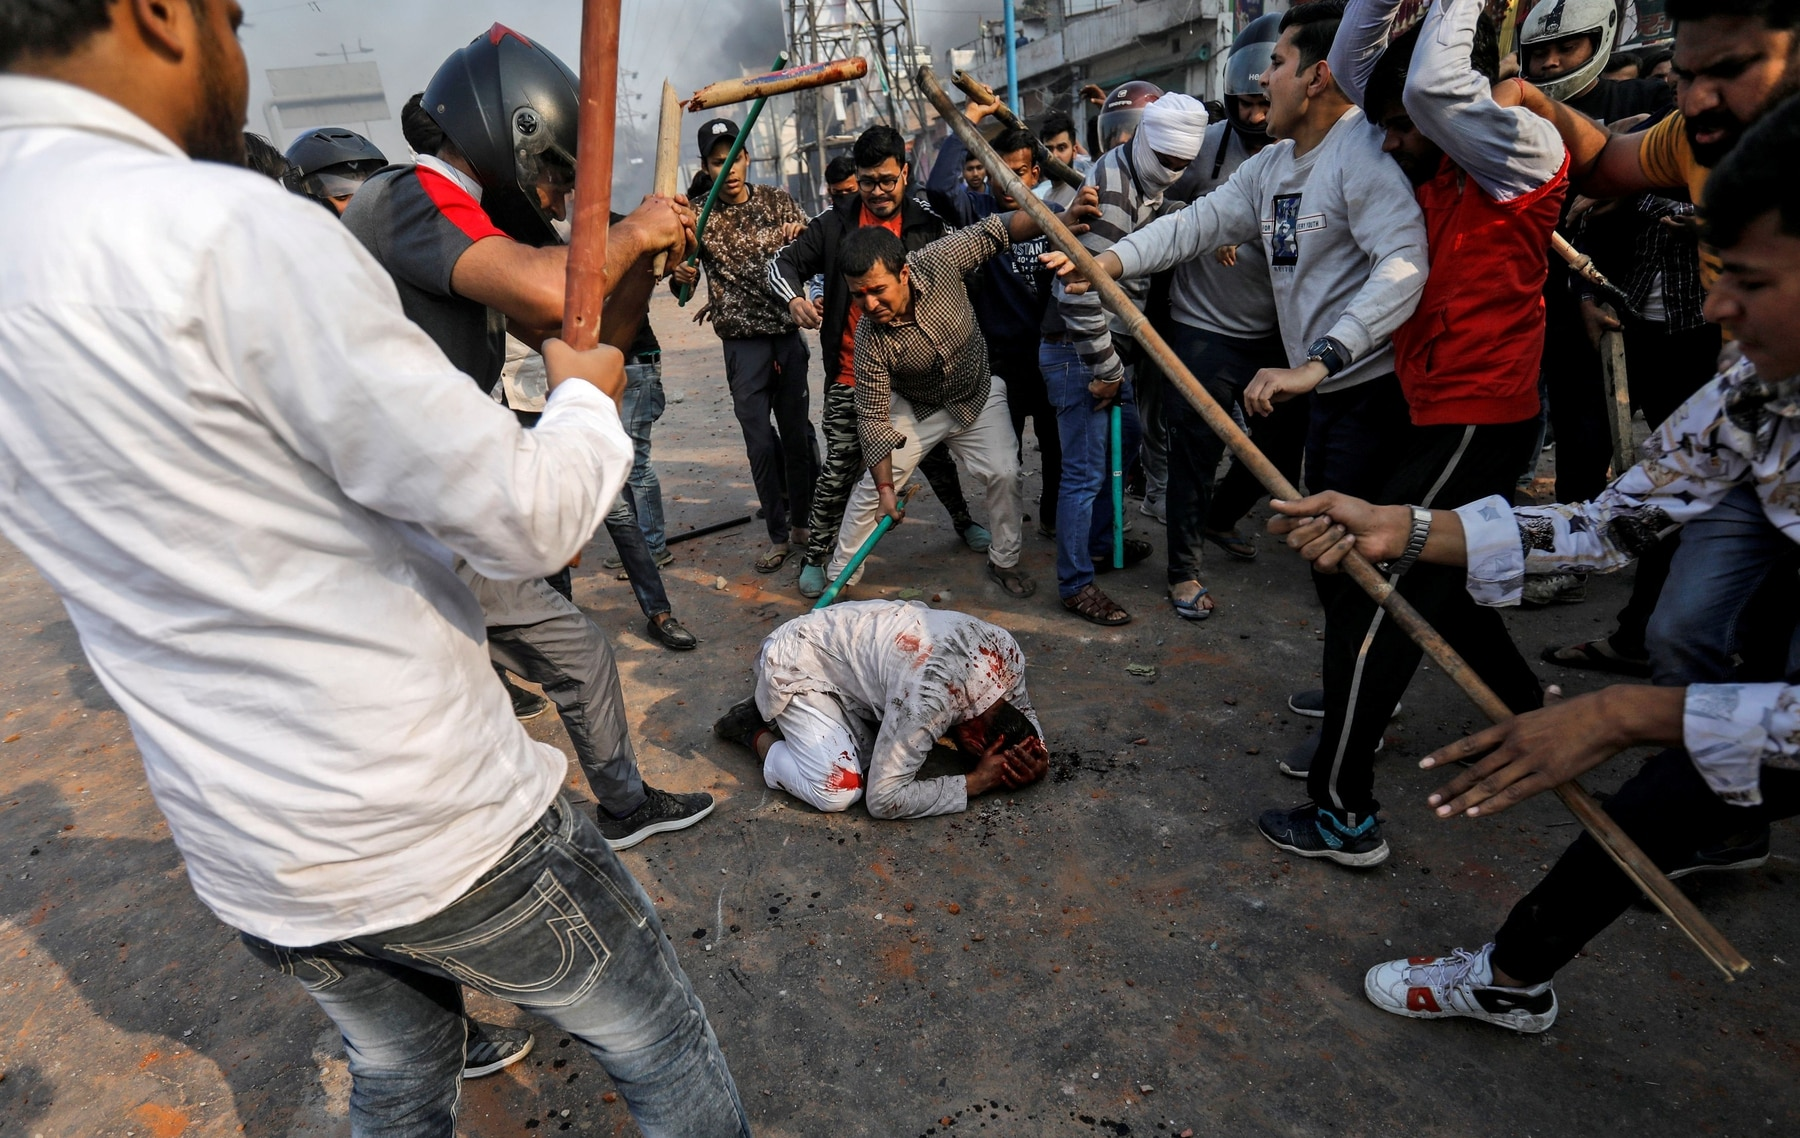 People supporting the new citizenship law beat a Muslim man during a clash with those opposing the law in New Delhi, February 24, 2020. REUTERS/Danish Siddiqui